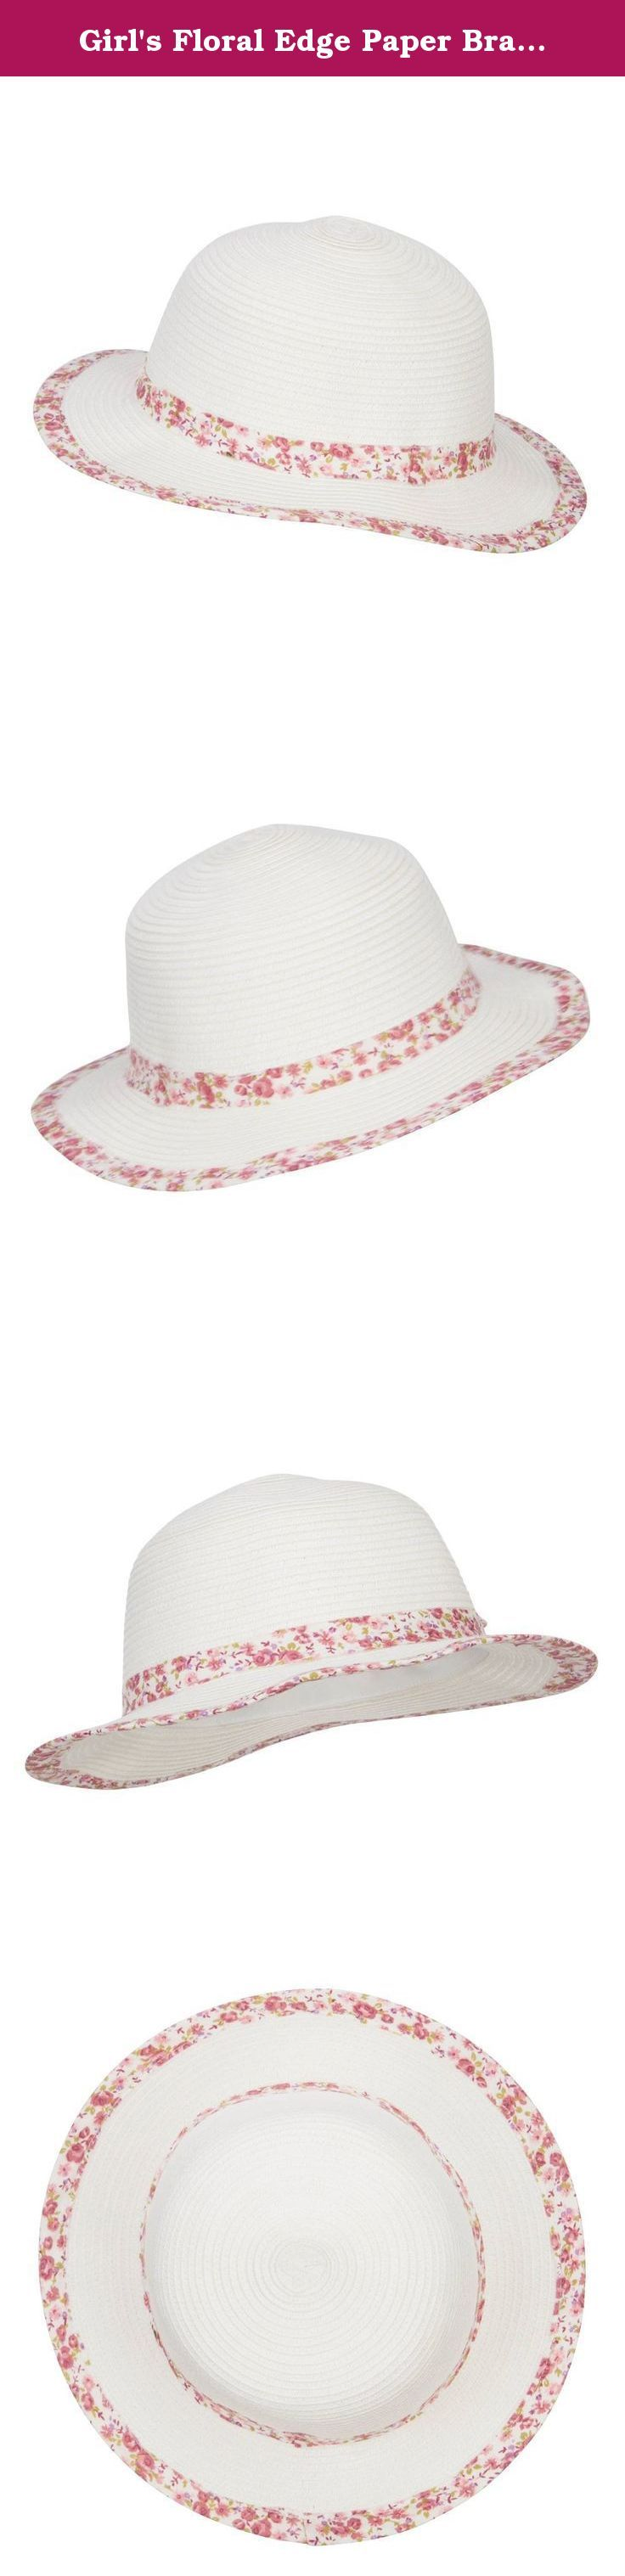 Girl's Floral Edge Paper Braid Hat - White OSFM. Lovely floral paper braid bucket hat for your little girls. Round and flexible crown. A floral hat band is featured around the crown. Brim is flexible and flat. Floral print around the edge of brim. Our kid's floral bucket hat is great for all kinds of outings such as picnic, school, play day and others. Spring and summer. 11.5(W) X 11.5(L) X 3.5(H) inches. Flexible, lightweight and cool material. Available in different colors and styles.